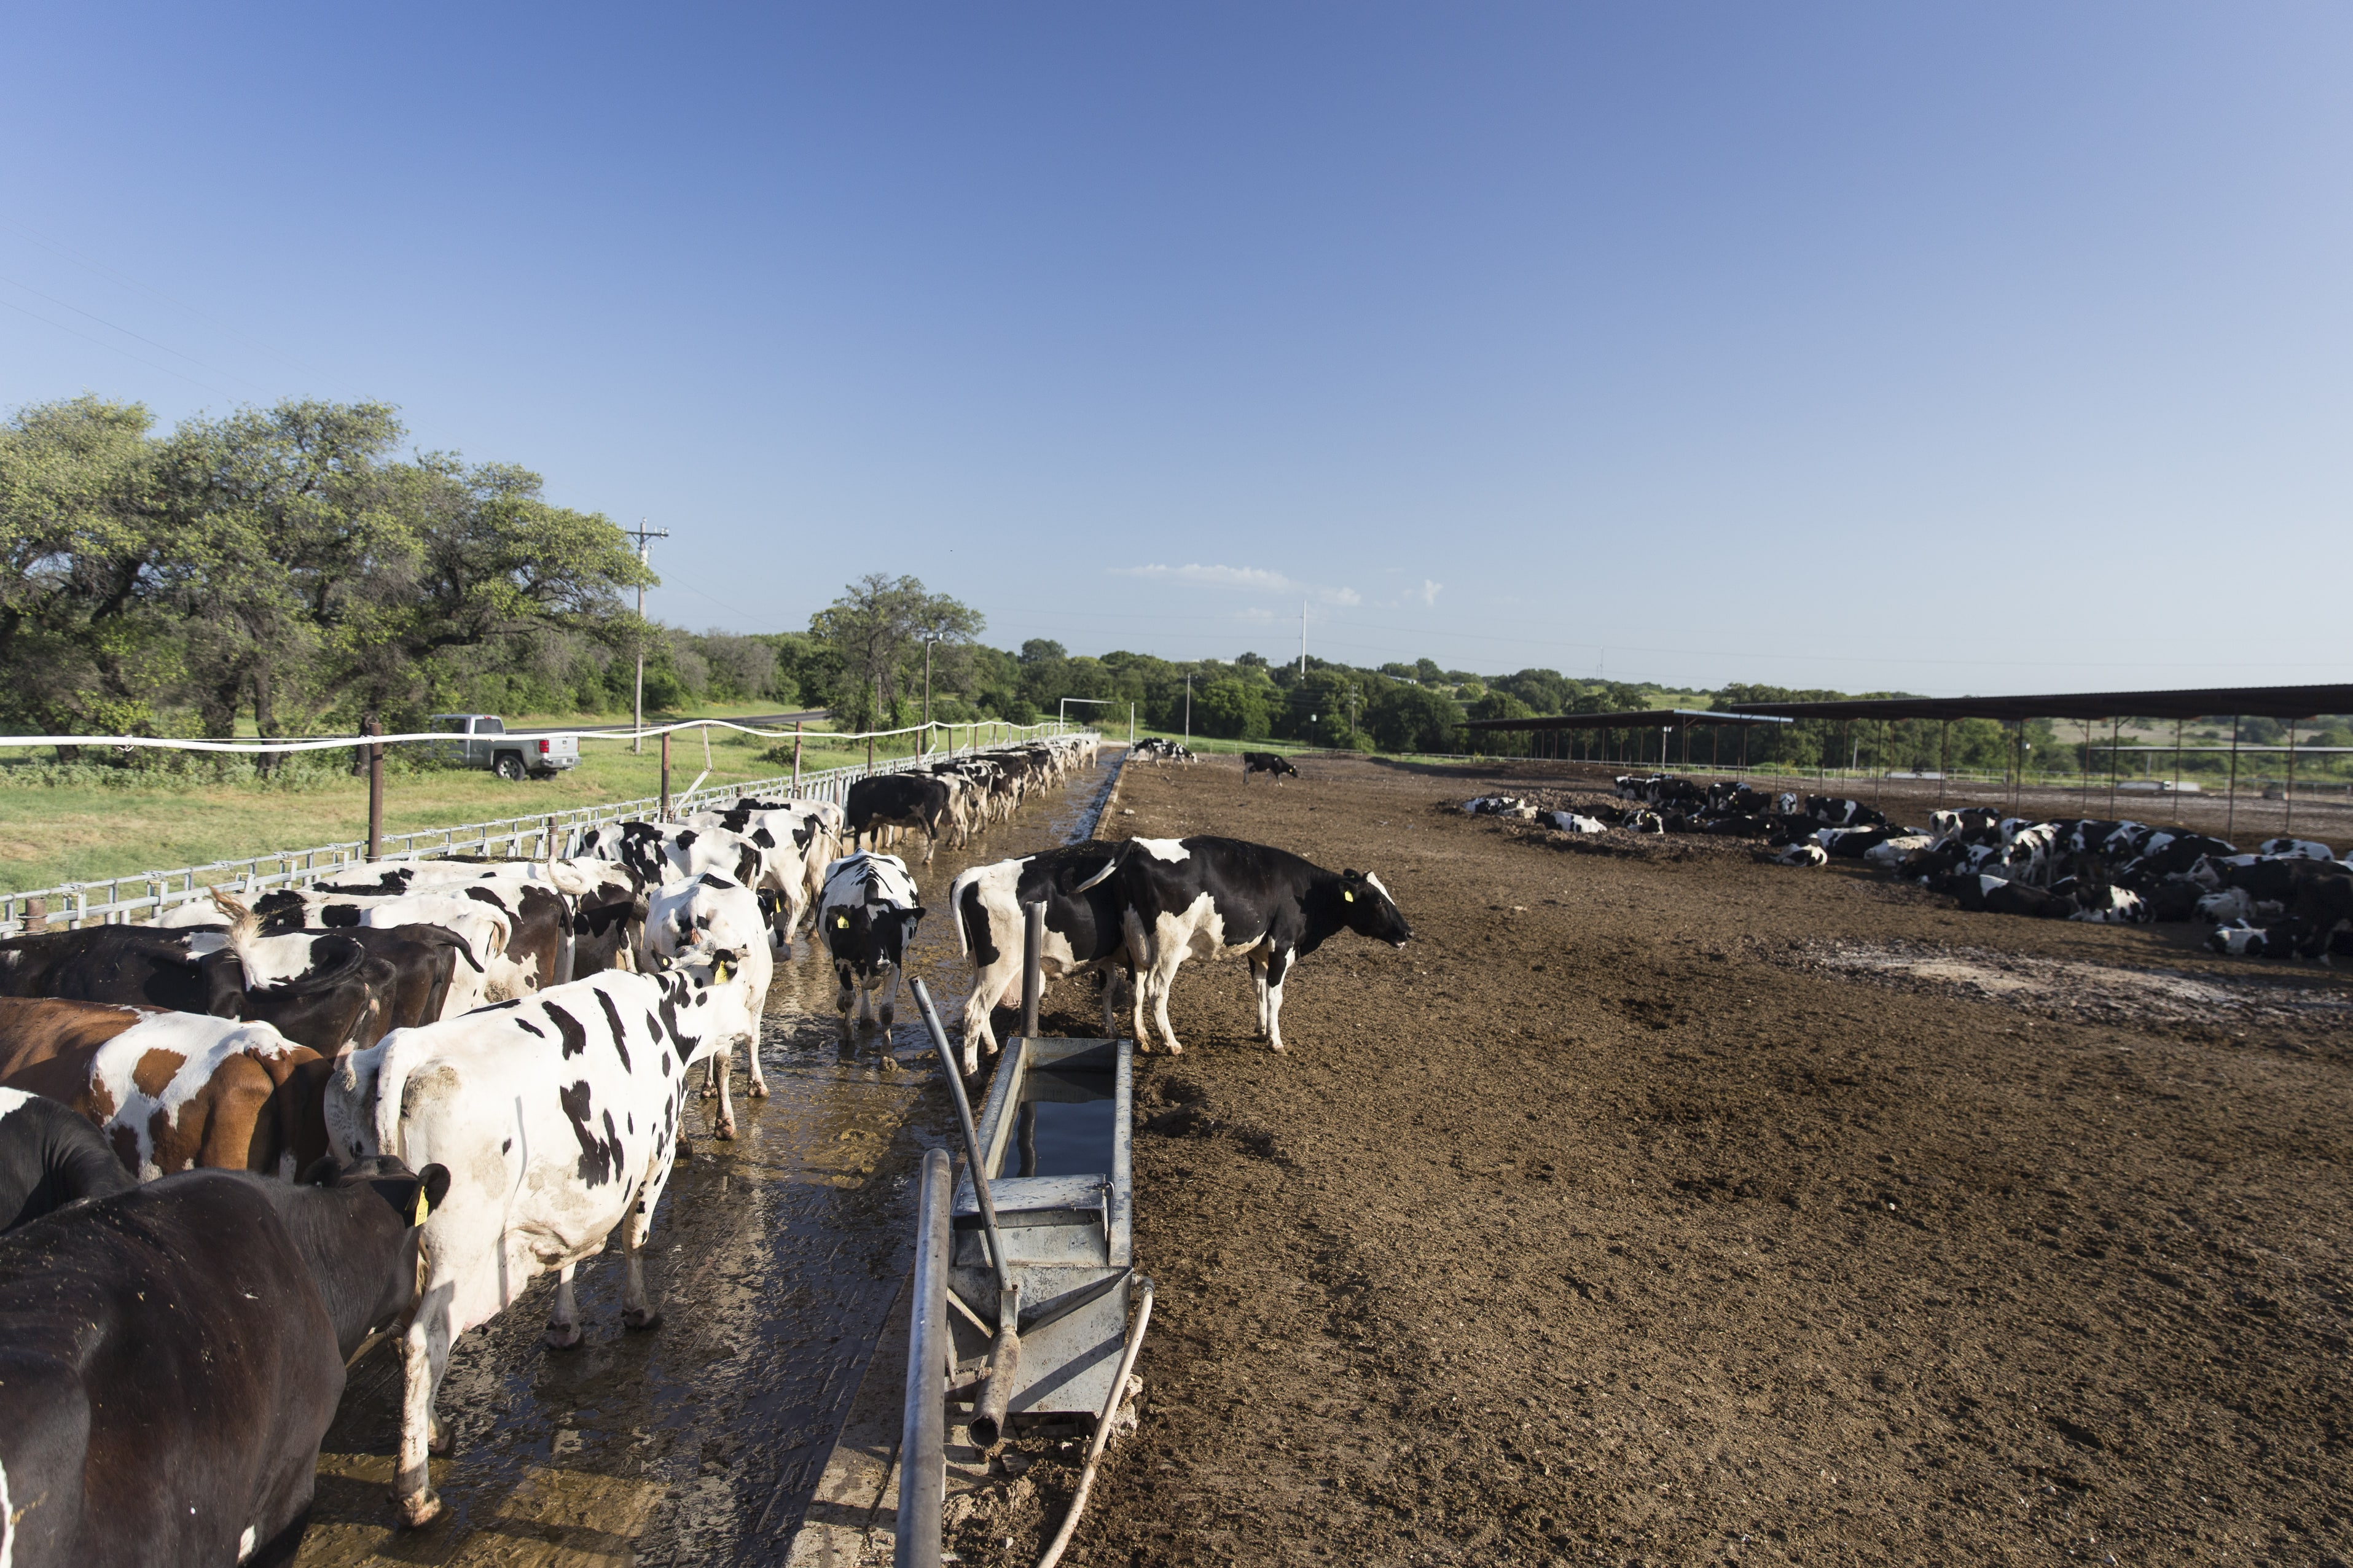 Proper Manure Management Key to Fly Control on Dairies